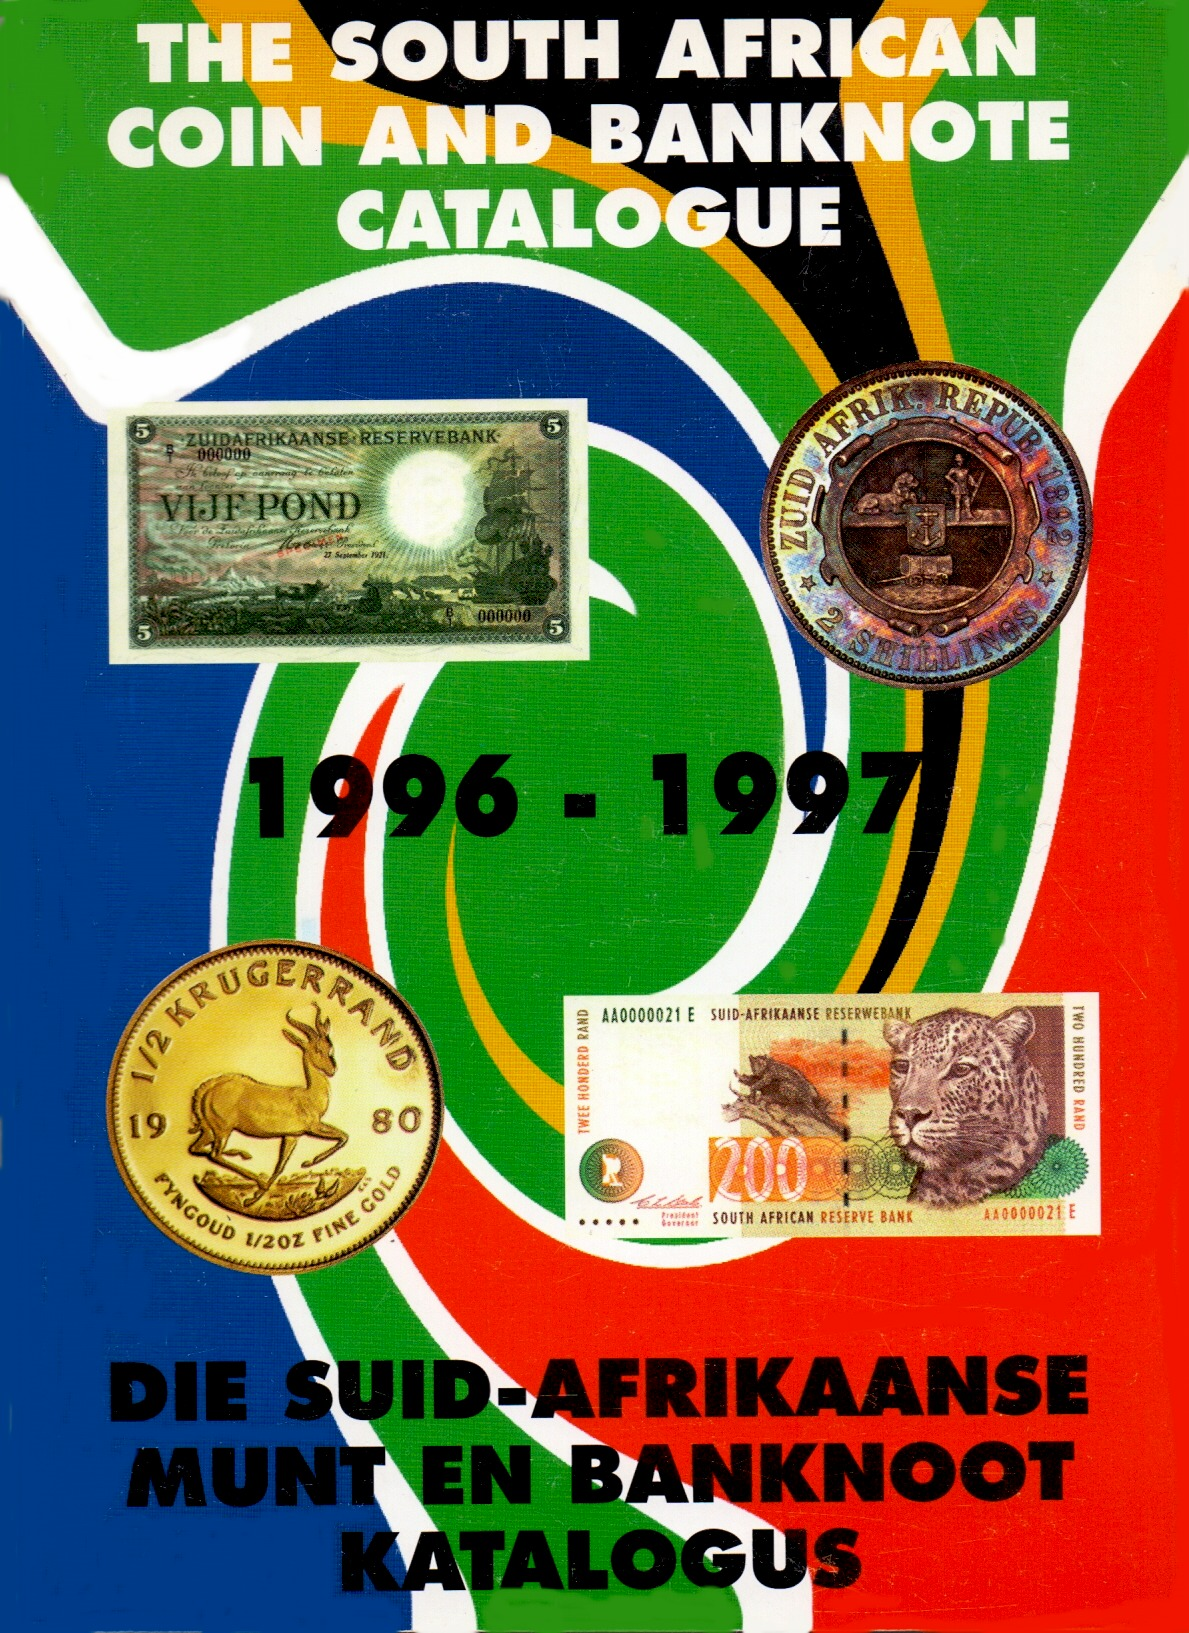 Randburg Coin Catalogue 1996 to 1997